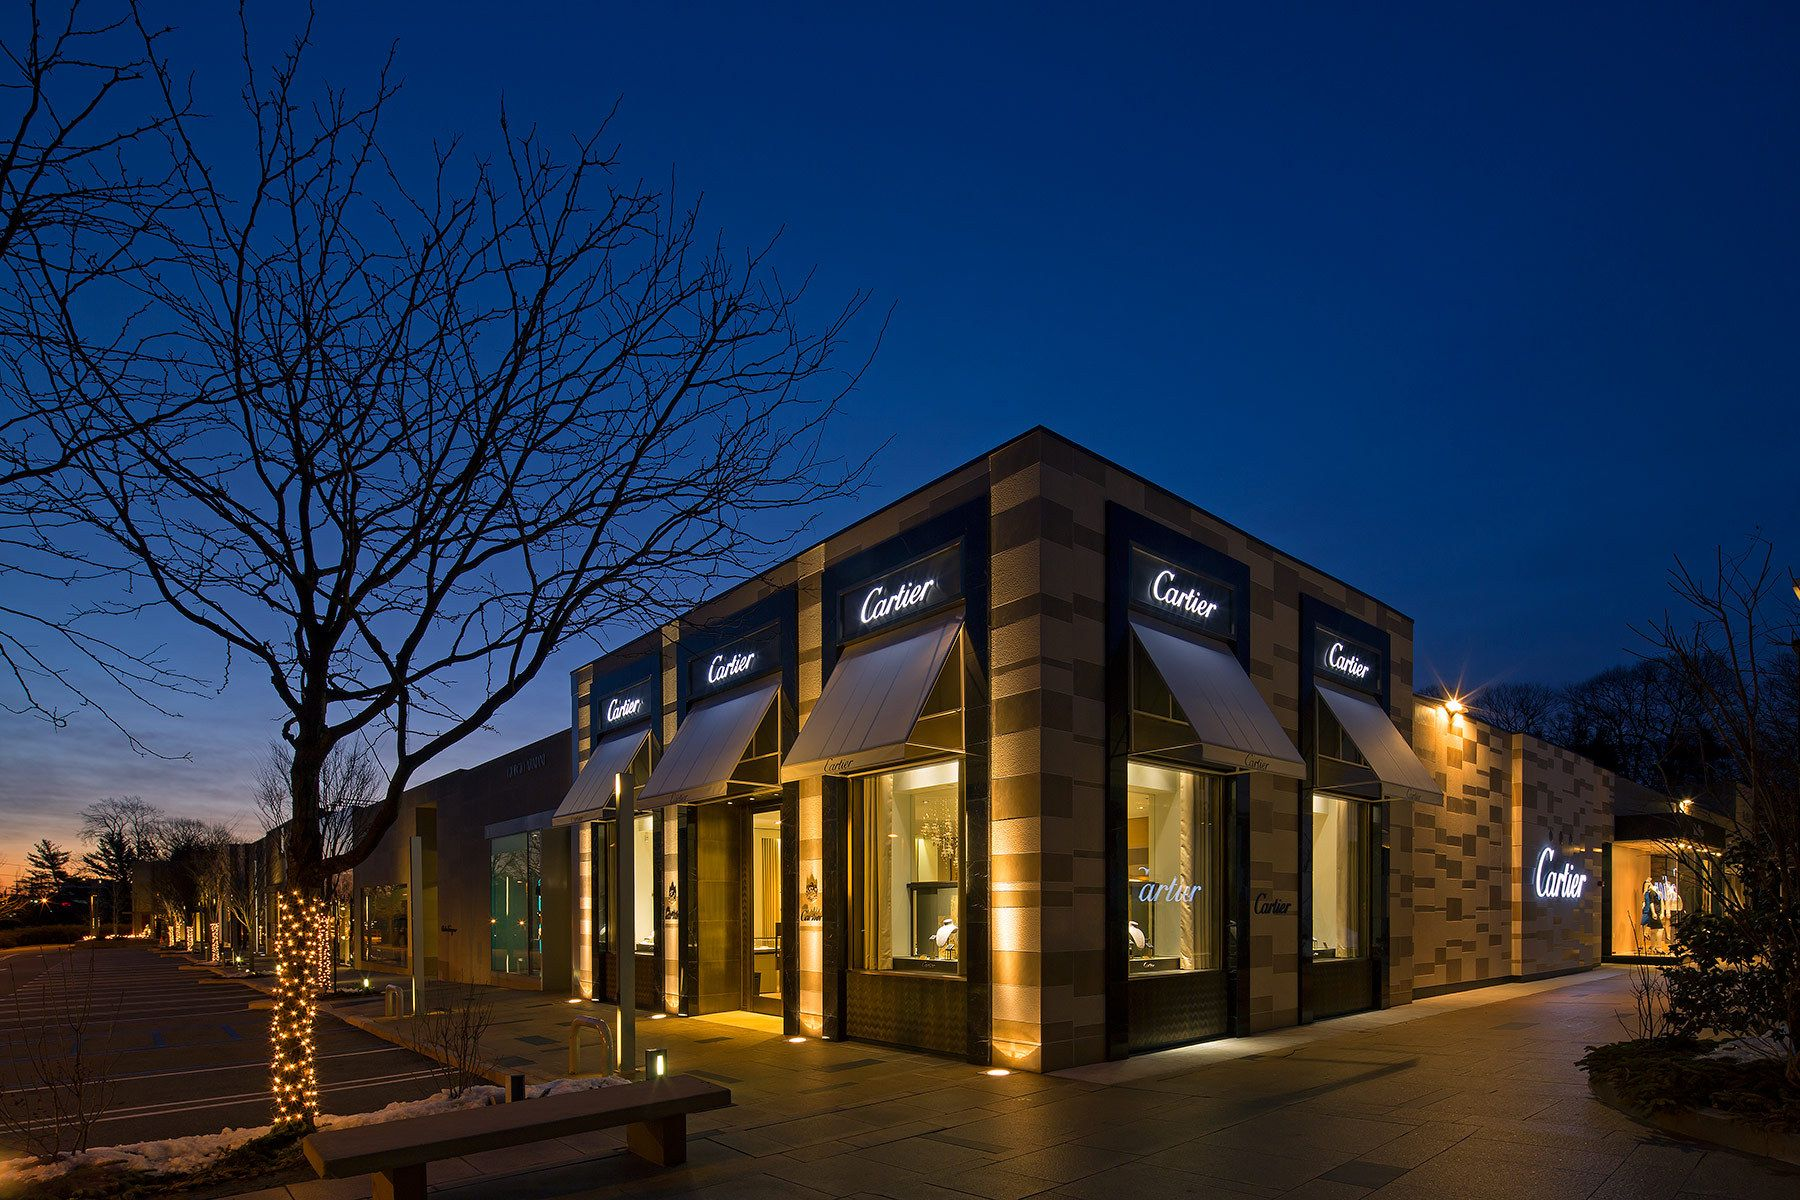 Architecture Exterior: Modern Retail Architecture - Google Search